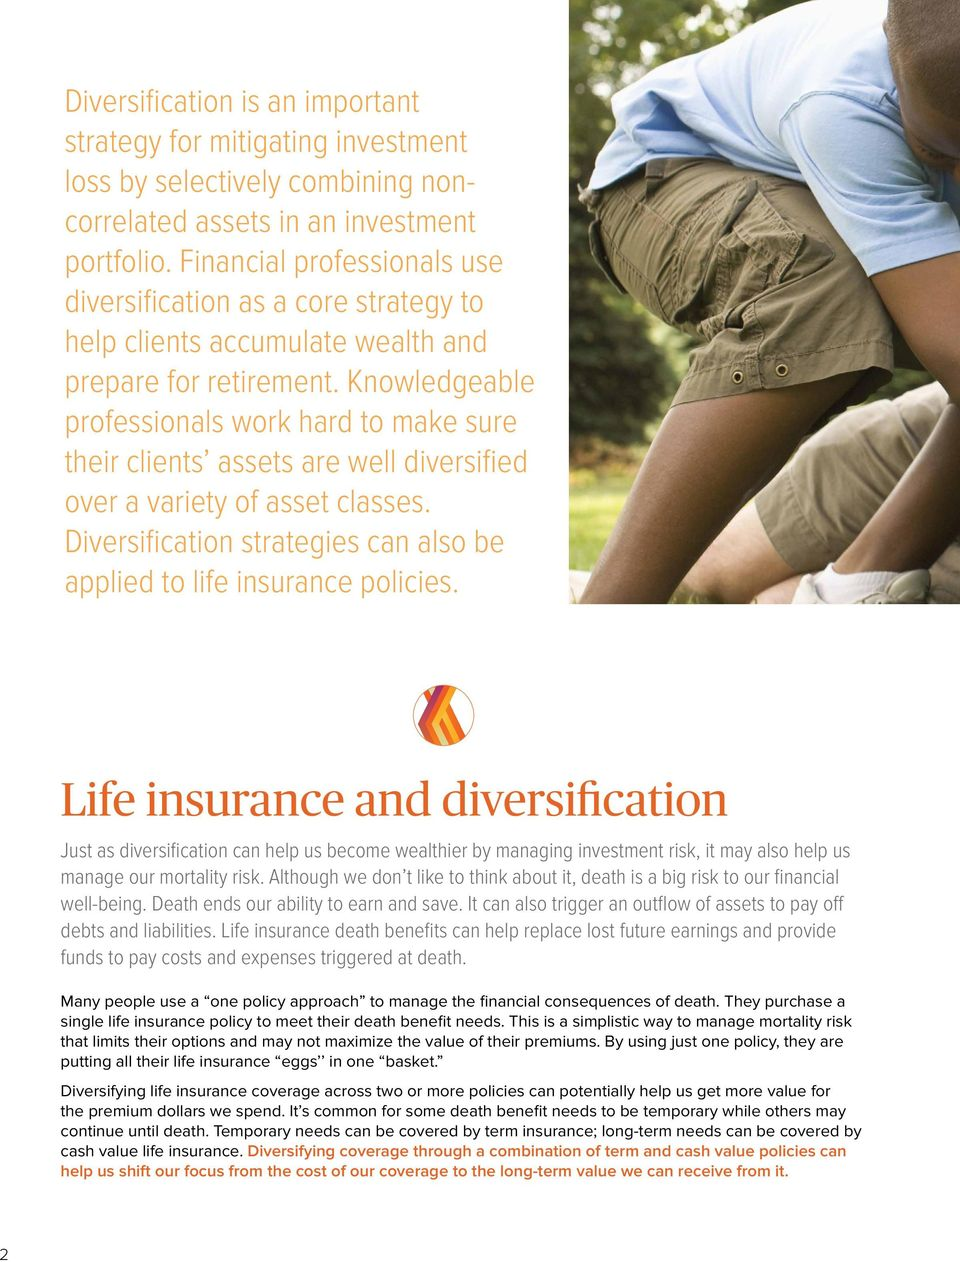 Knowledgeable professionals work hard to make sure their clients assets are well diversified over a variety of asset classes. Diversification strategies can also be applied to life insurance policies.